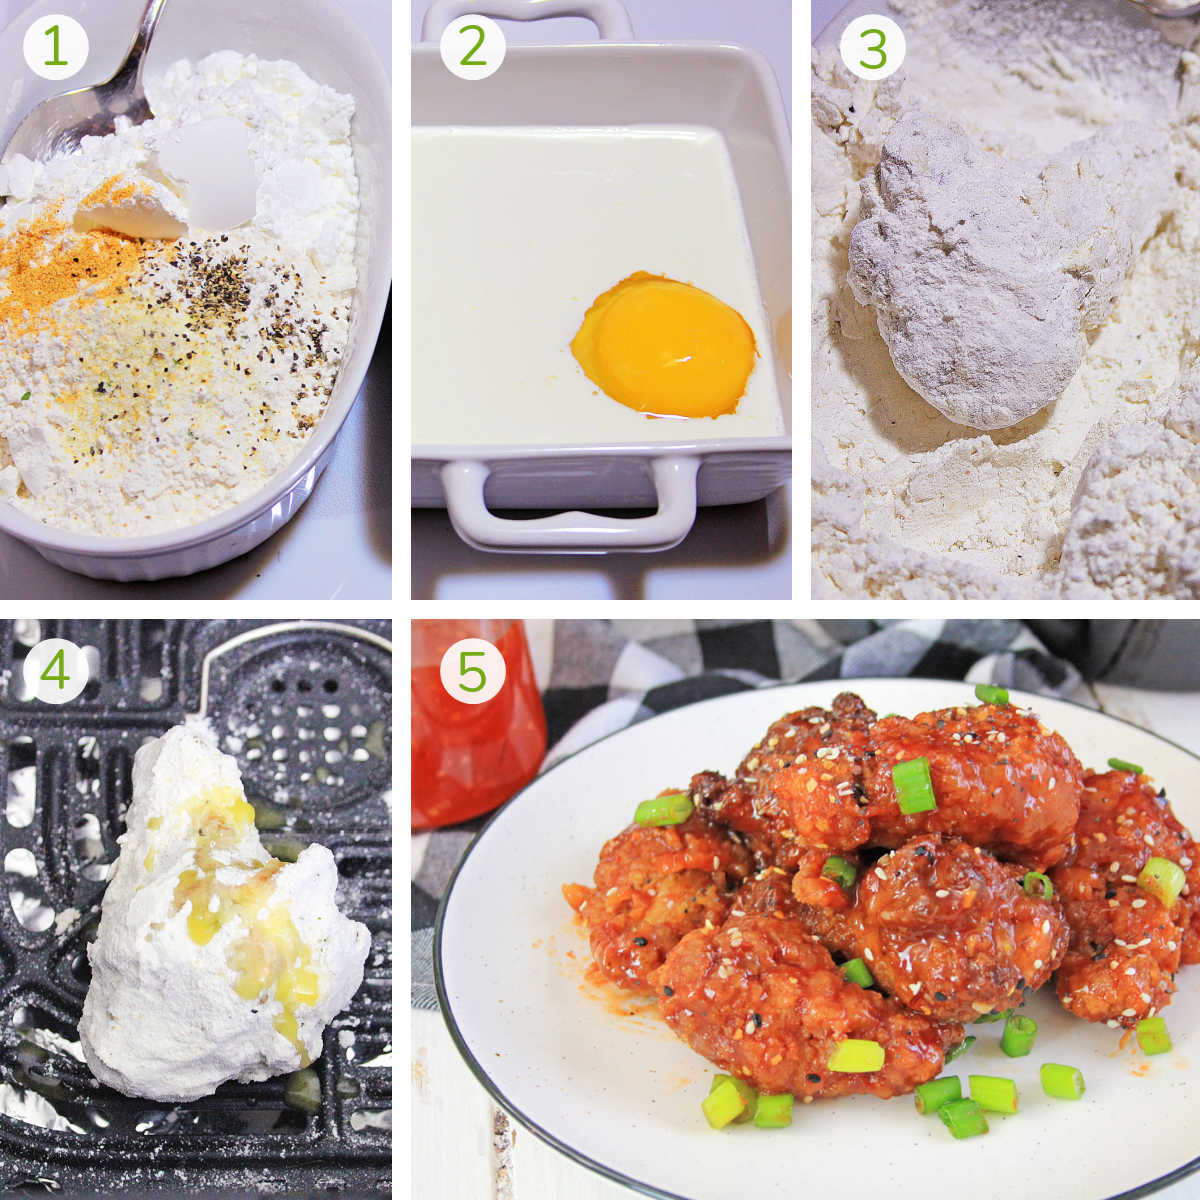 process shots showing how to make the flour coating, rolling the chicken in the mixture, adding it to the air fryer and adding the sauce.